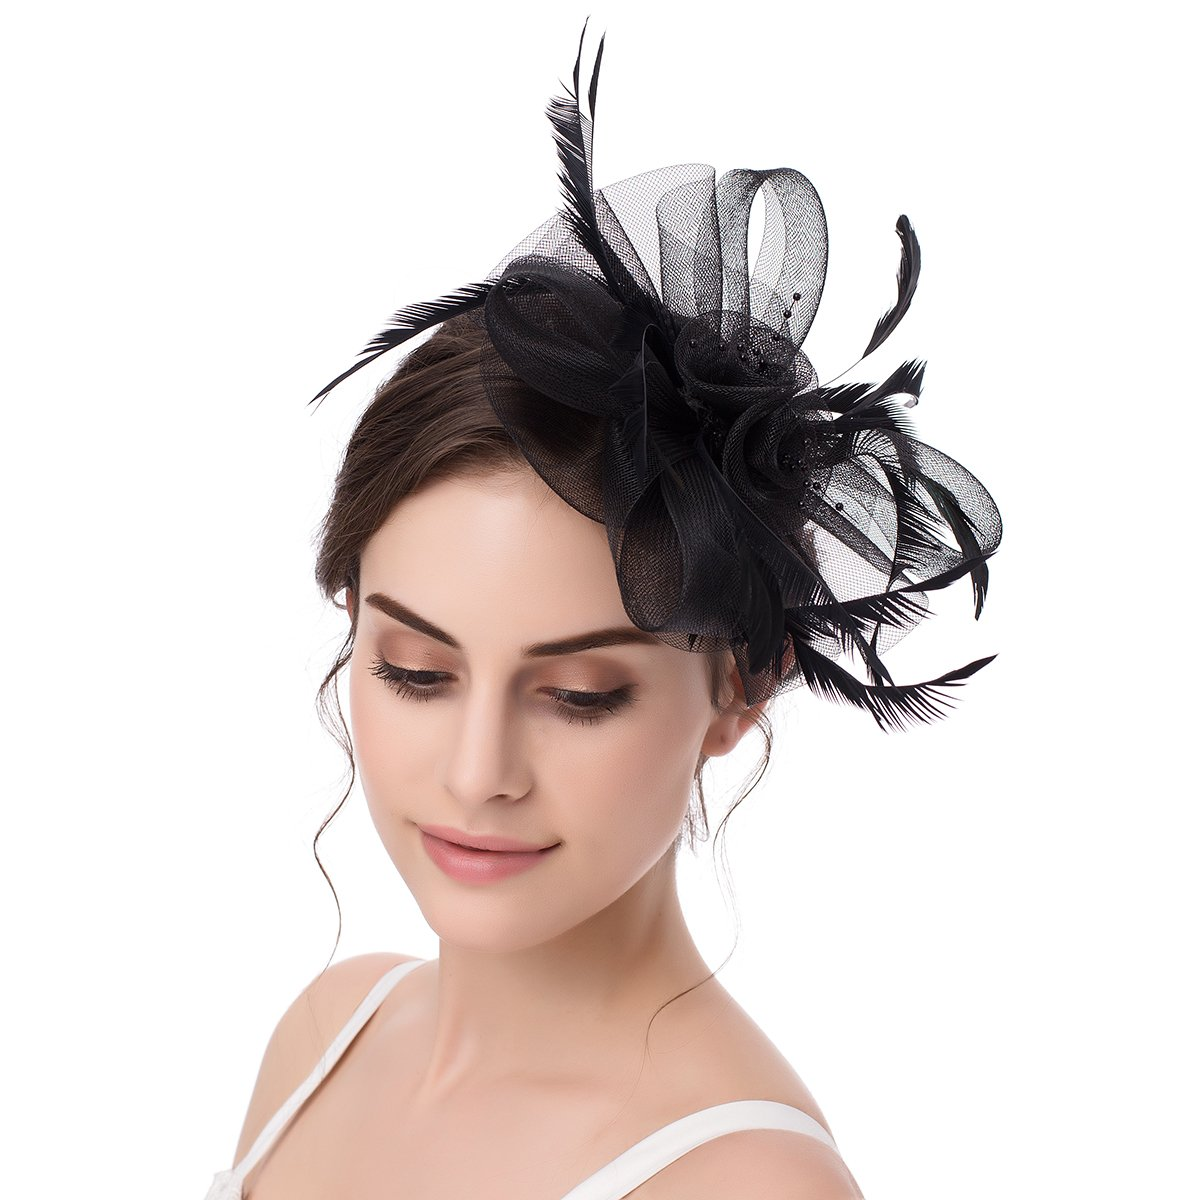 ABaowedding Hat Fascinator Hair Clip Pillbox Hat Feather Flower Cocktail Wedding Party Headband TS005